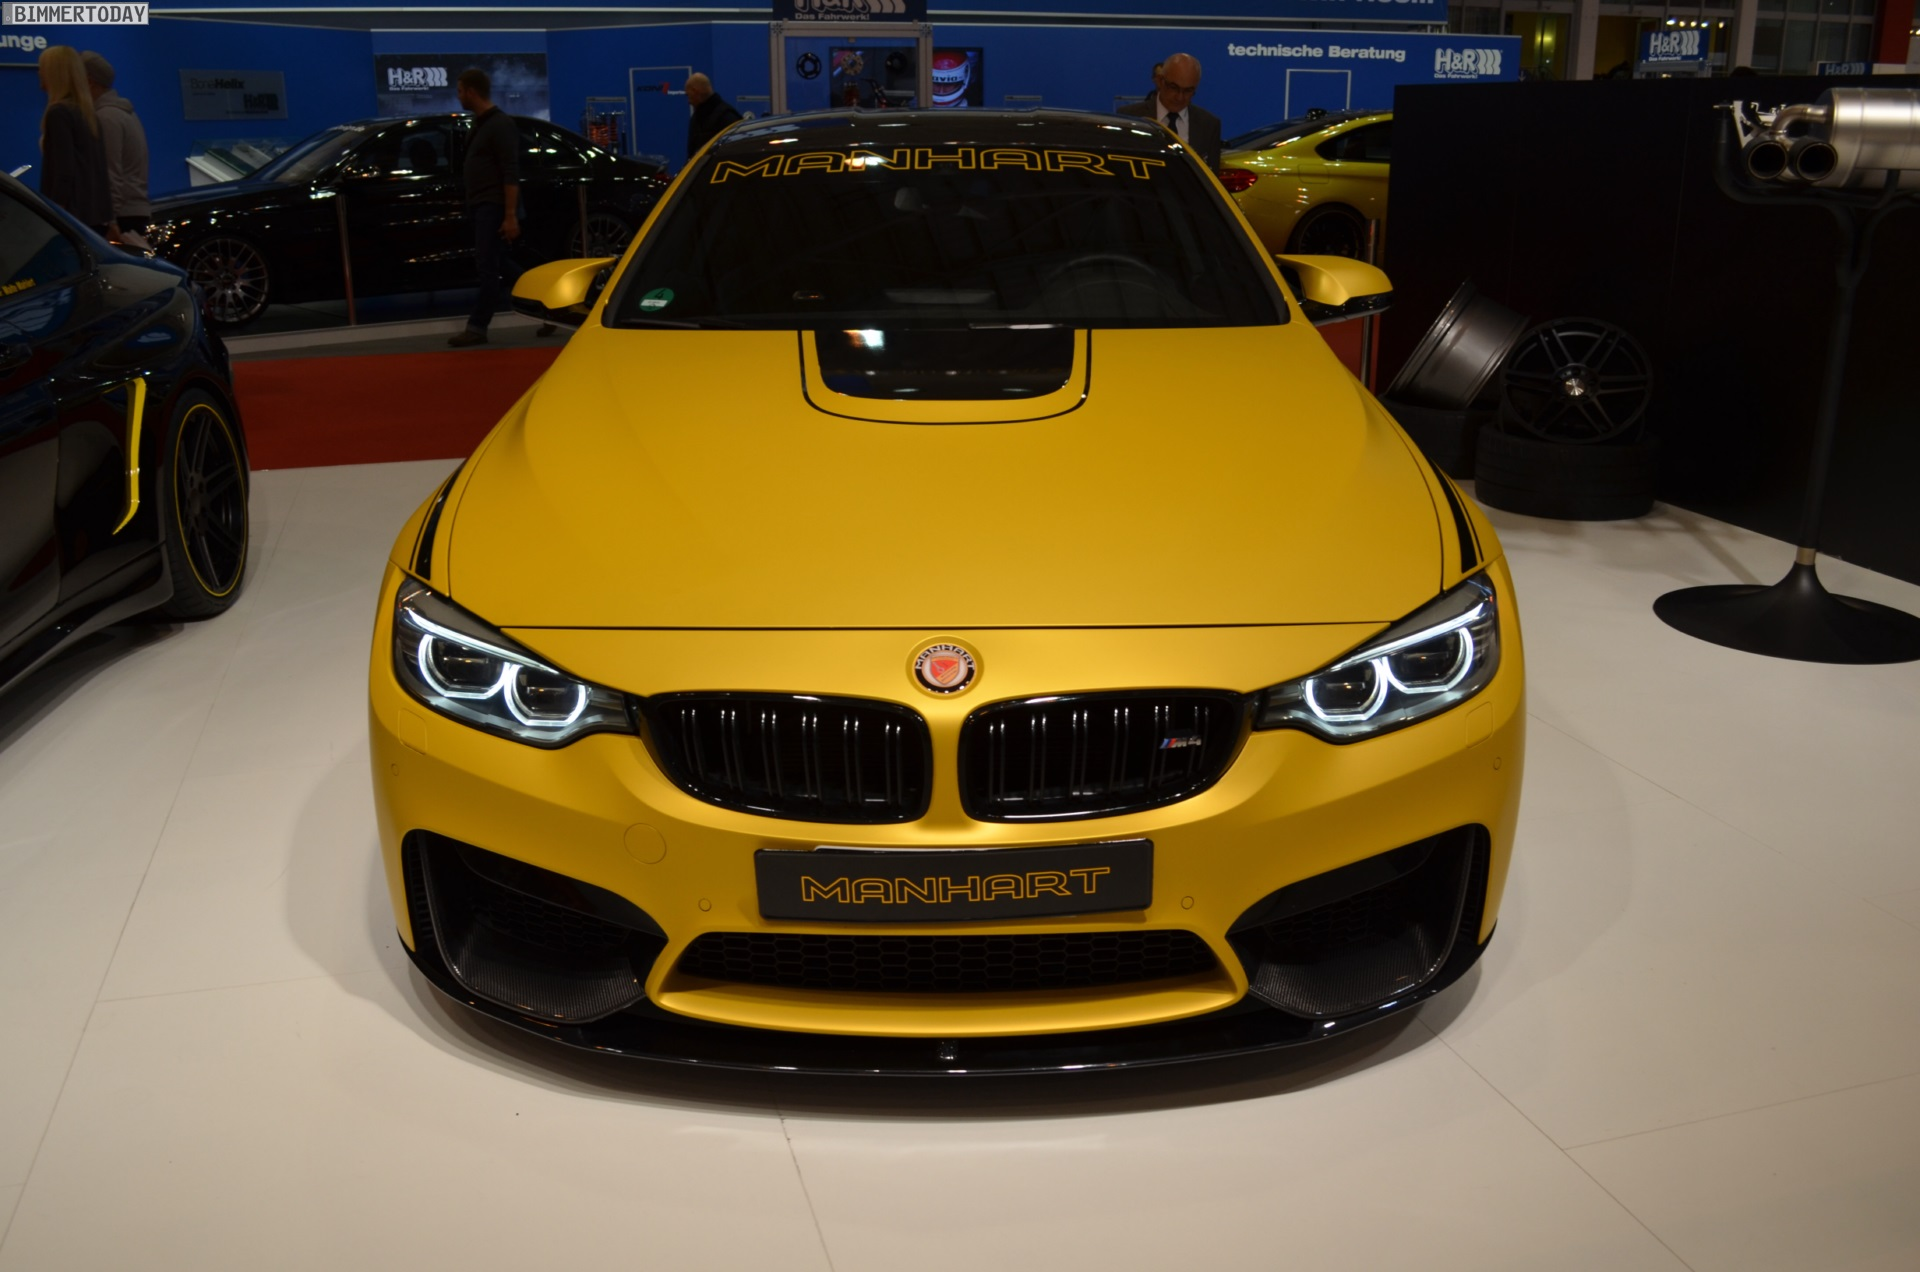 Manhart Mh4 550 Bmw M4 Tuning At 2014 Essen Motor Show